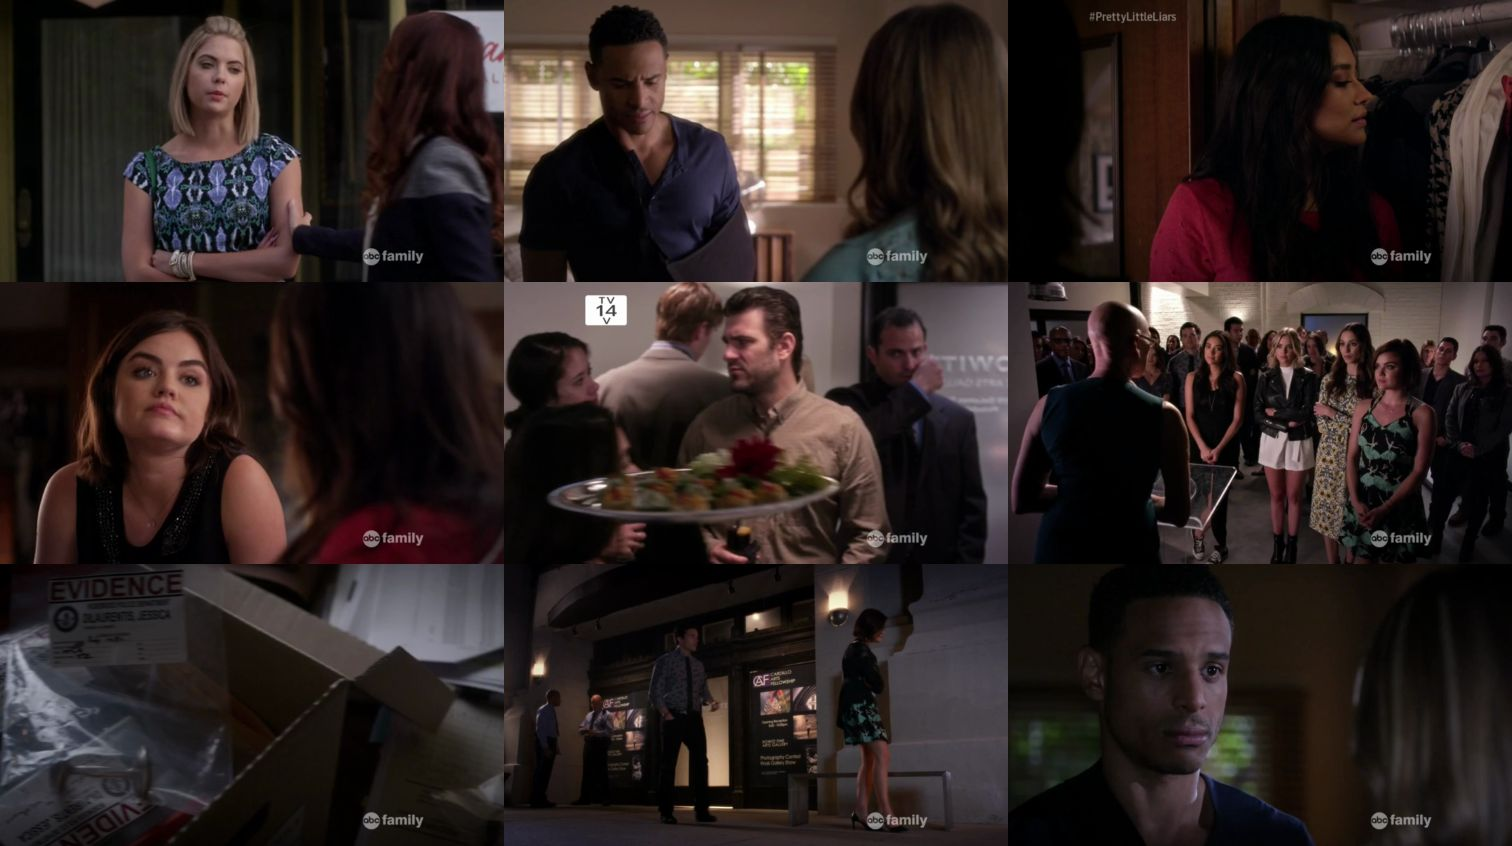 Pretty Little Liars S06E08 HDTV X264 [MP4+ MKV 720P]